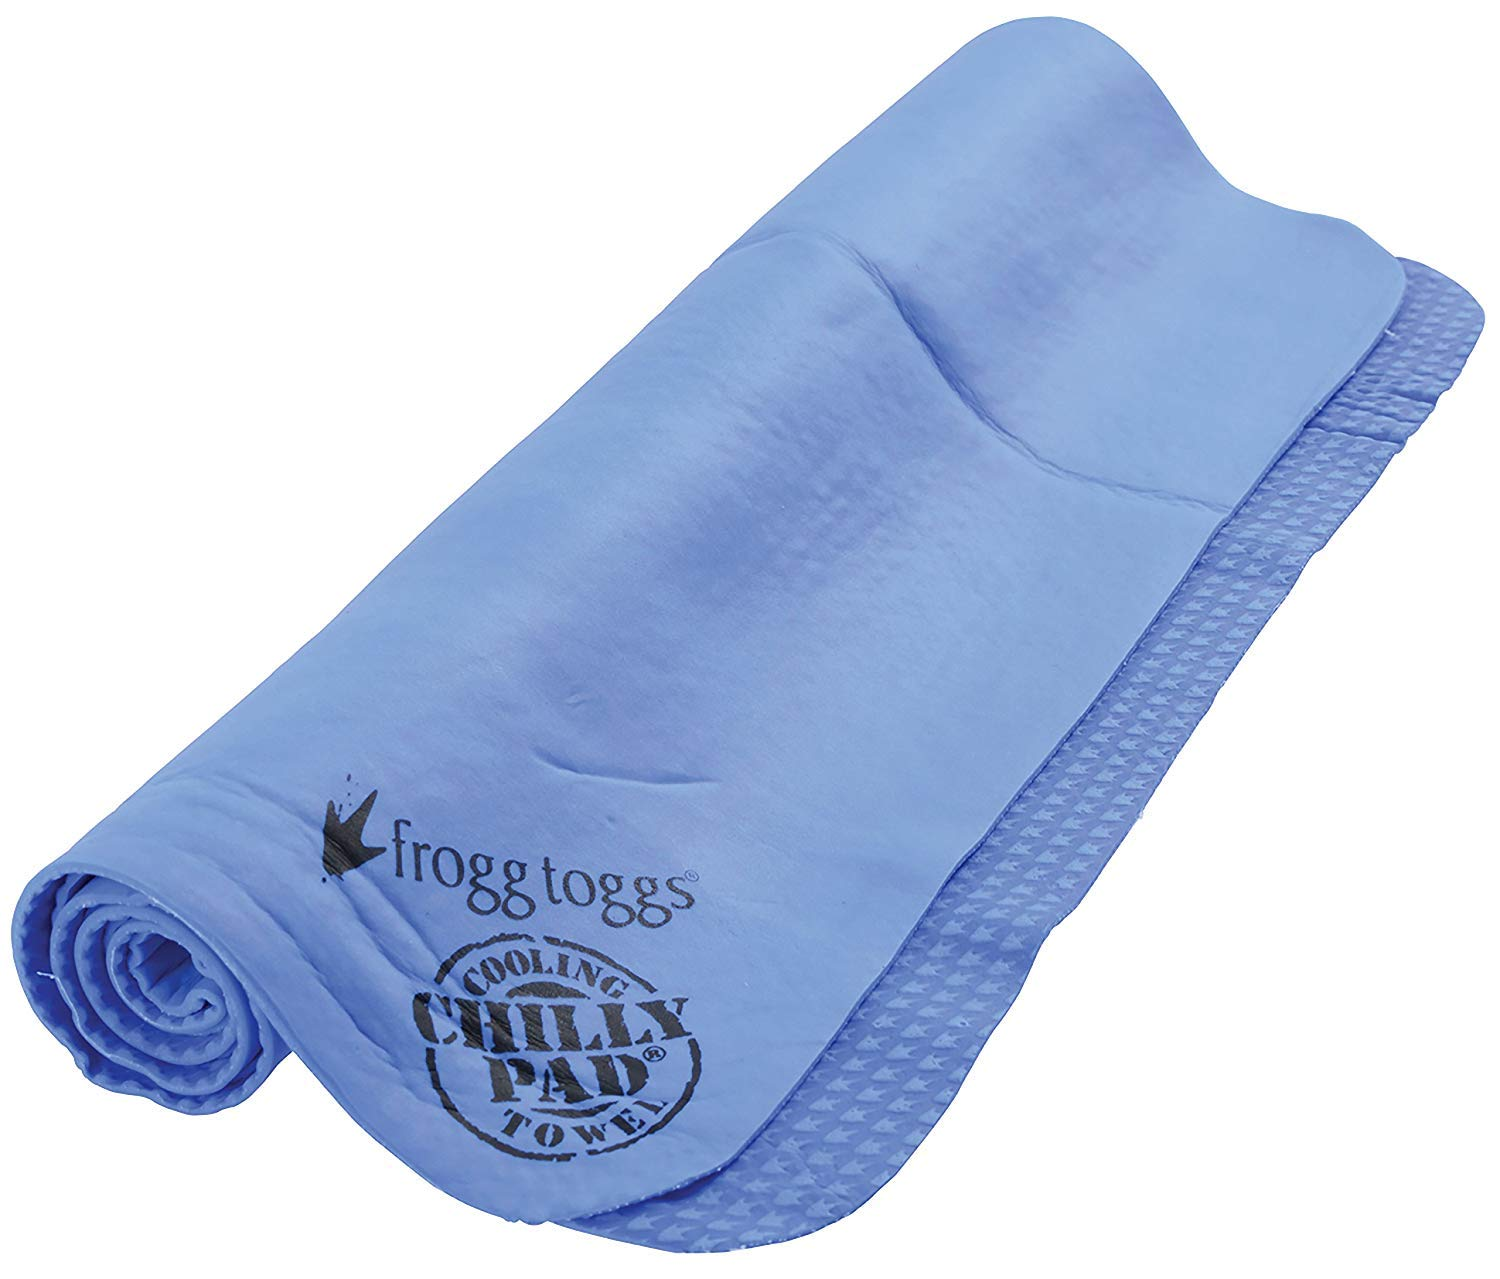 Frogg Toggs Chilly Pad Cooling Towel, Sky Blue, Size 33'' x 13''